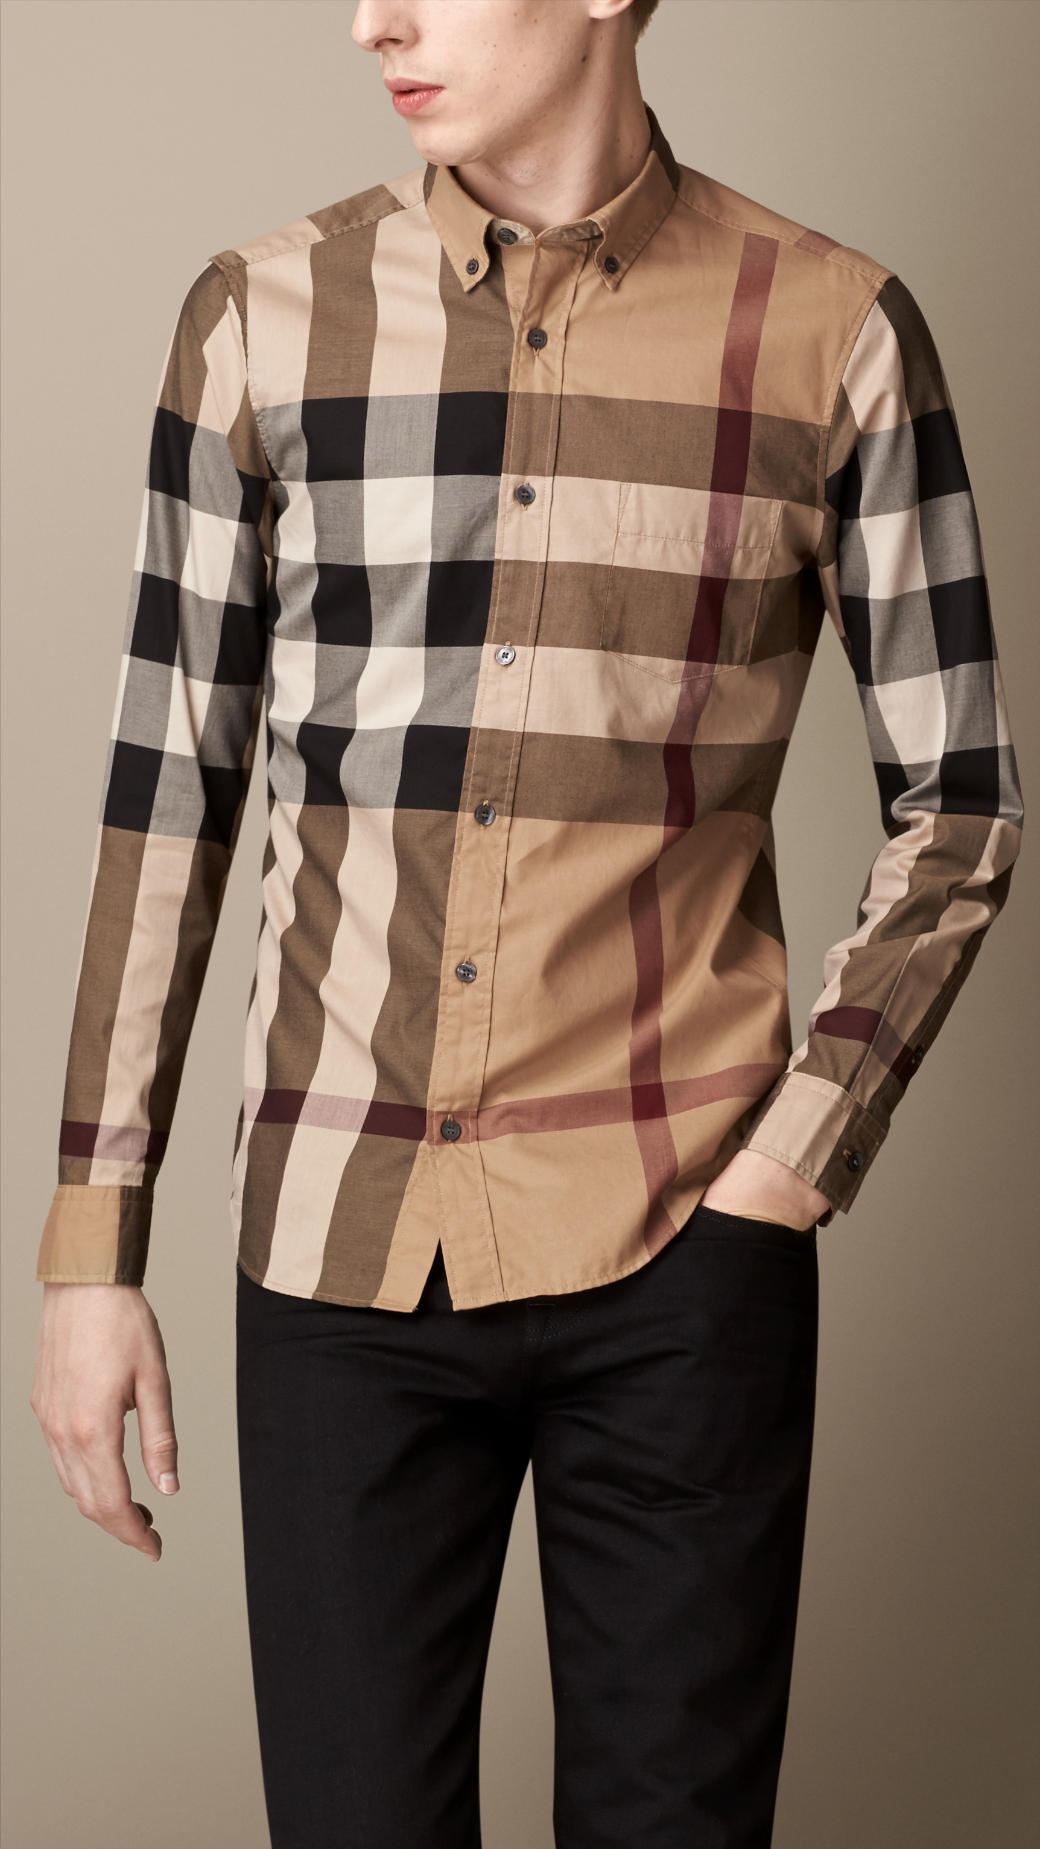 London Mens Shirts